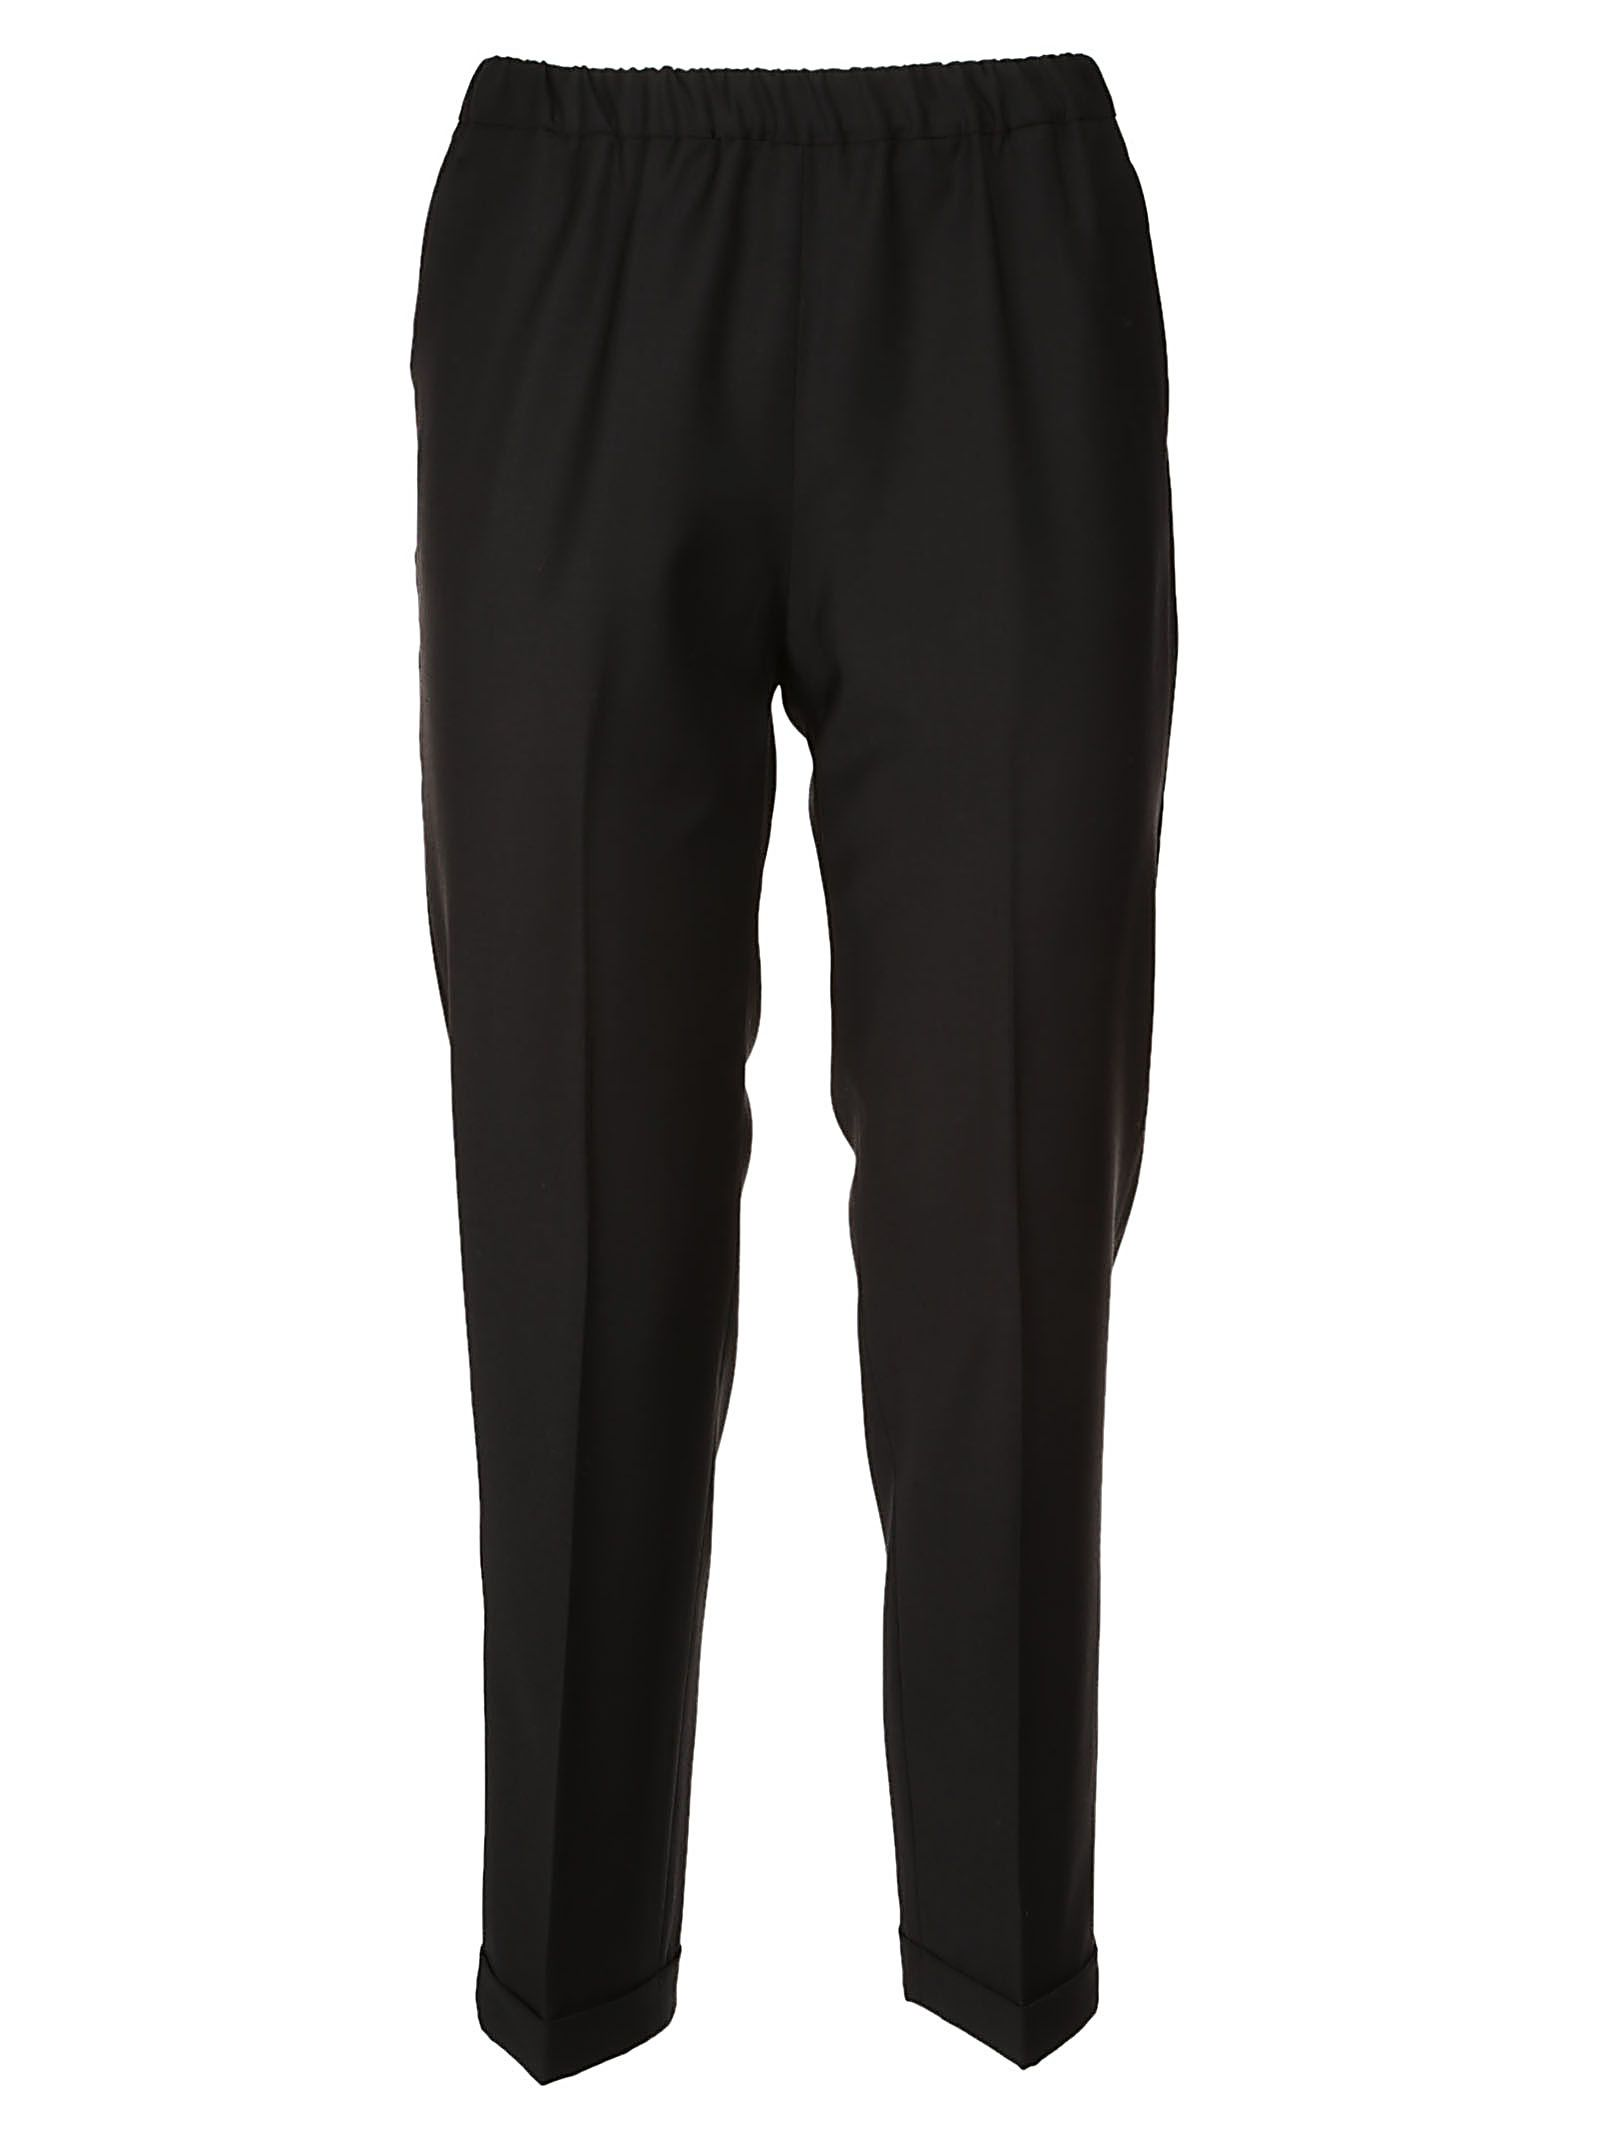 Quelledue Cropped Trousers